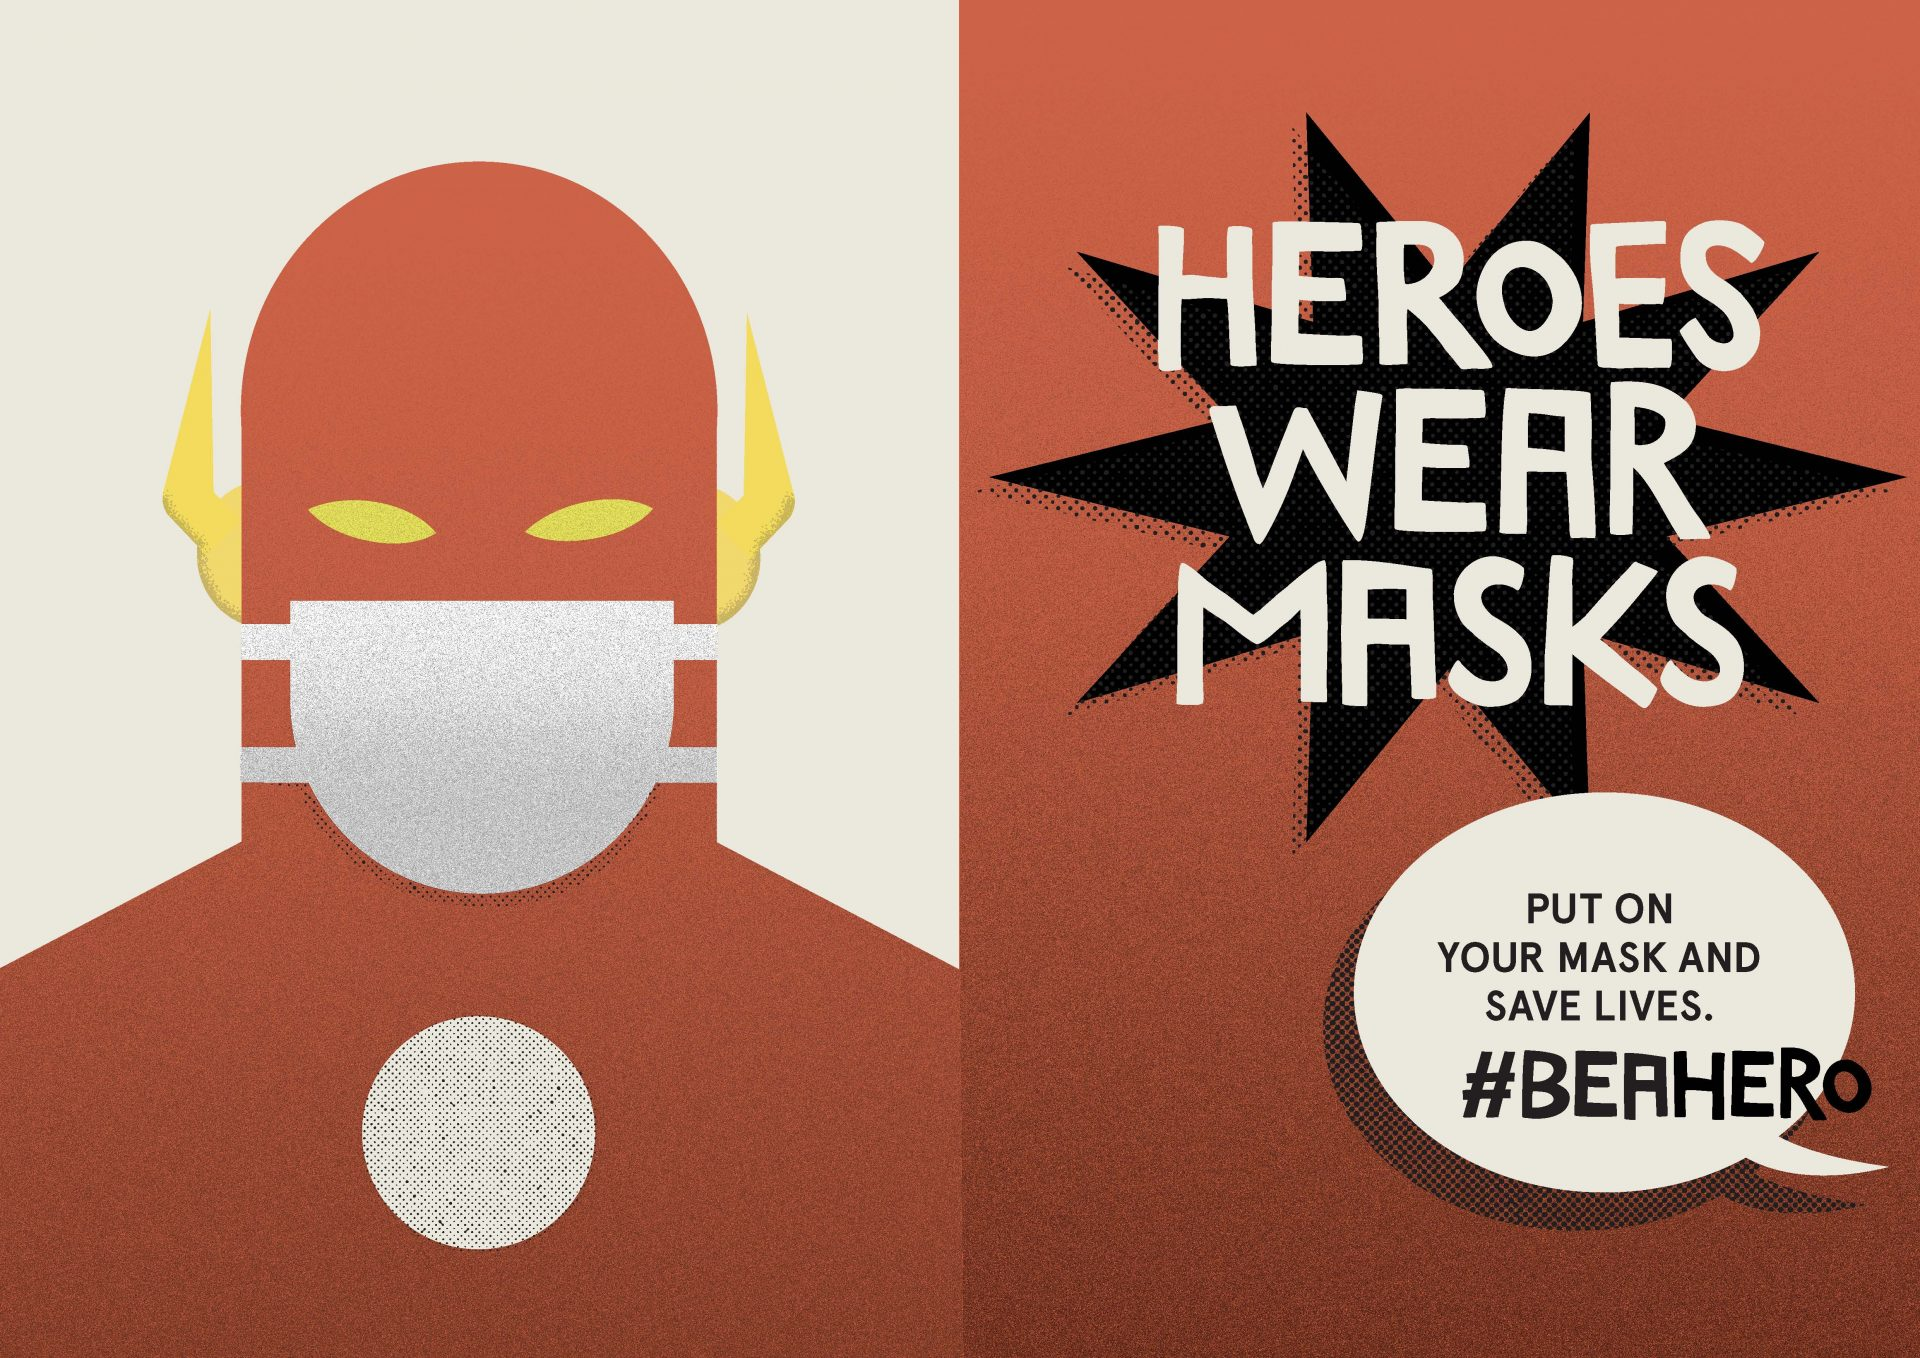 Heroes wear masks. Flash.